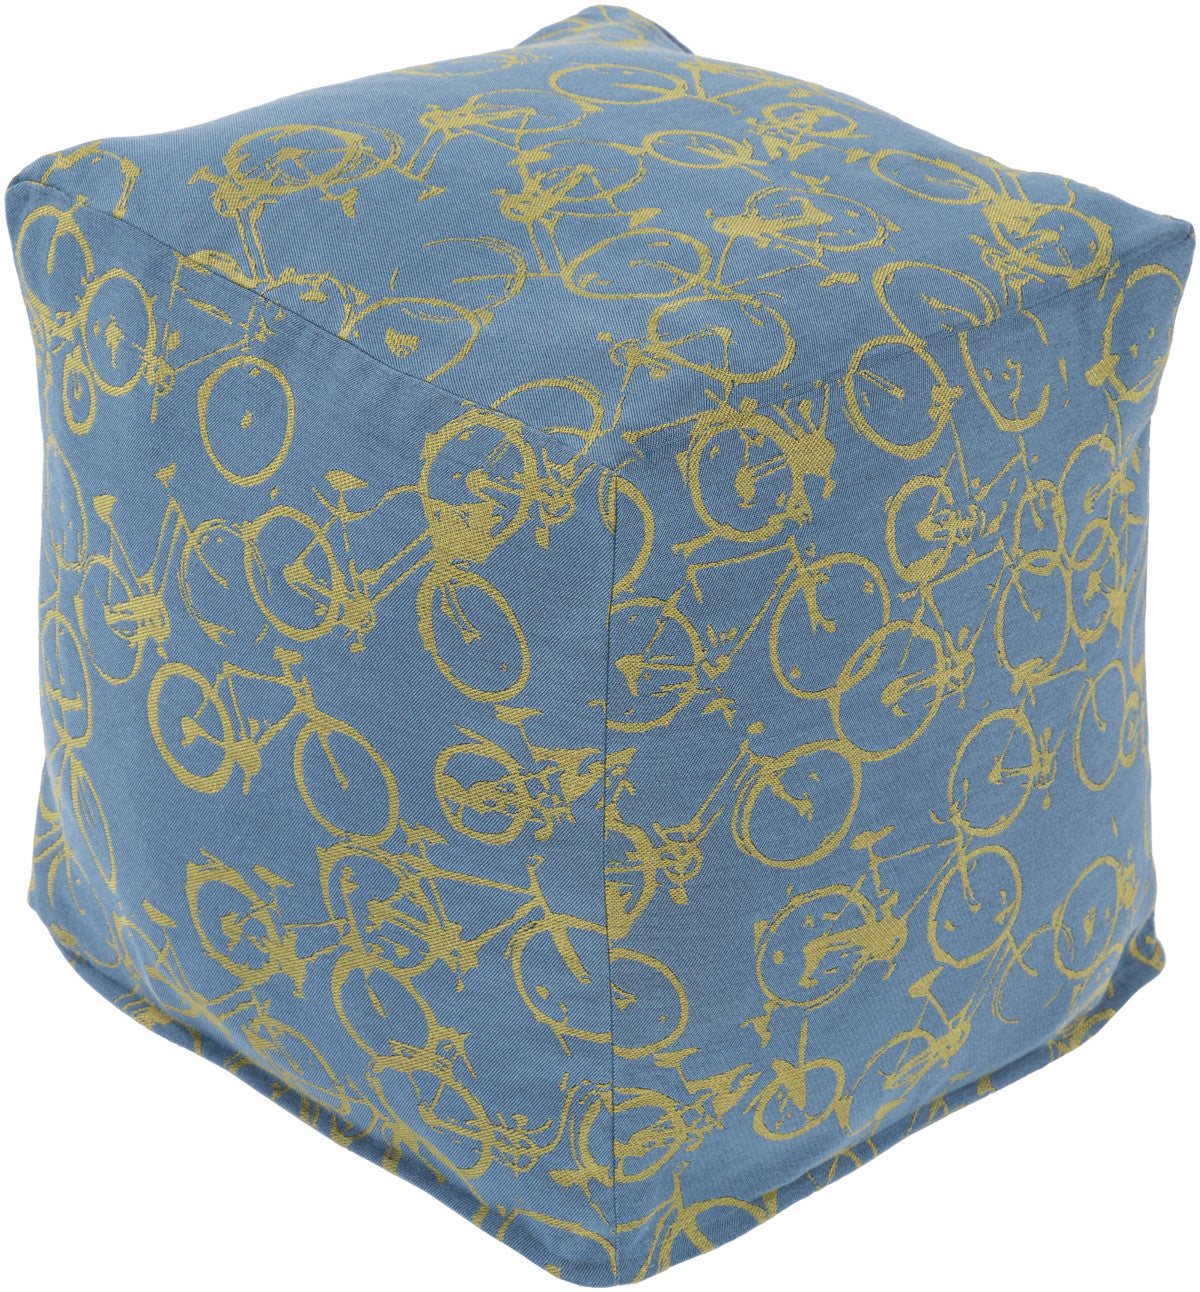 Surya Peddle Power PDPF-004 Blue Pouf by Mike Farrell